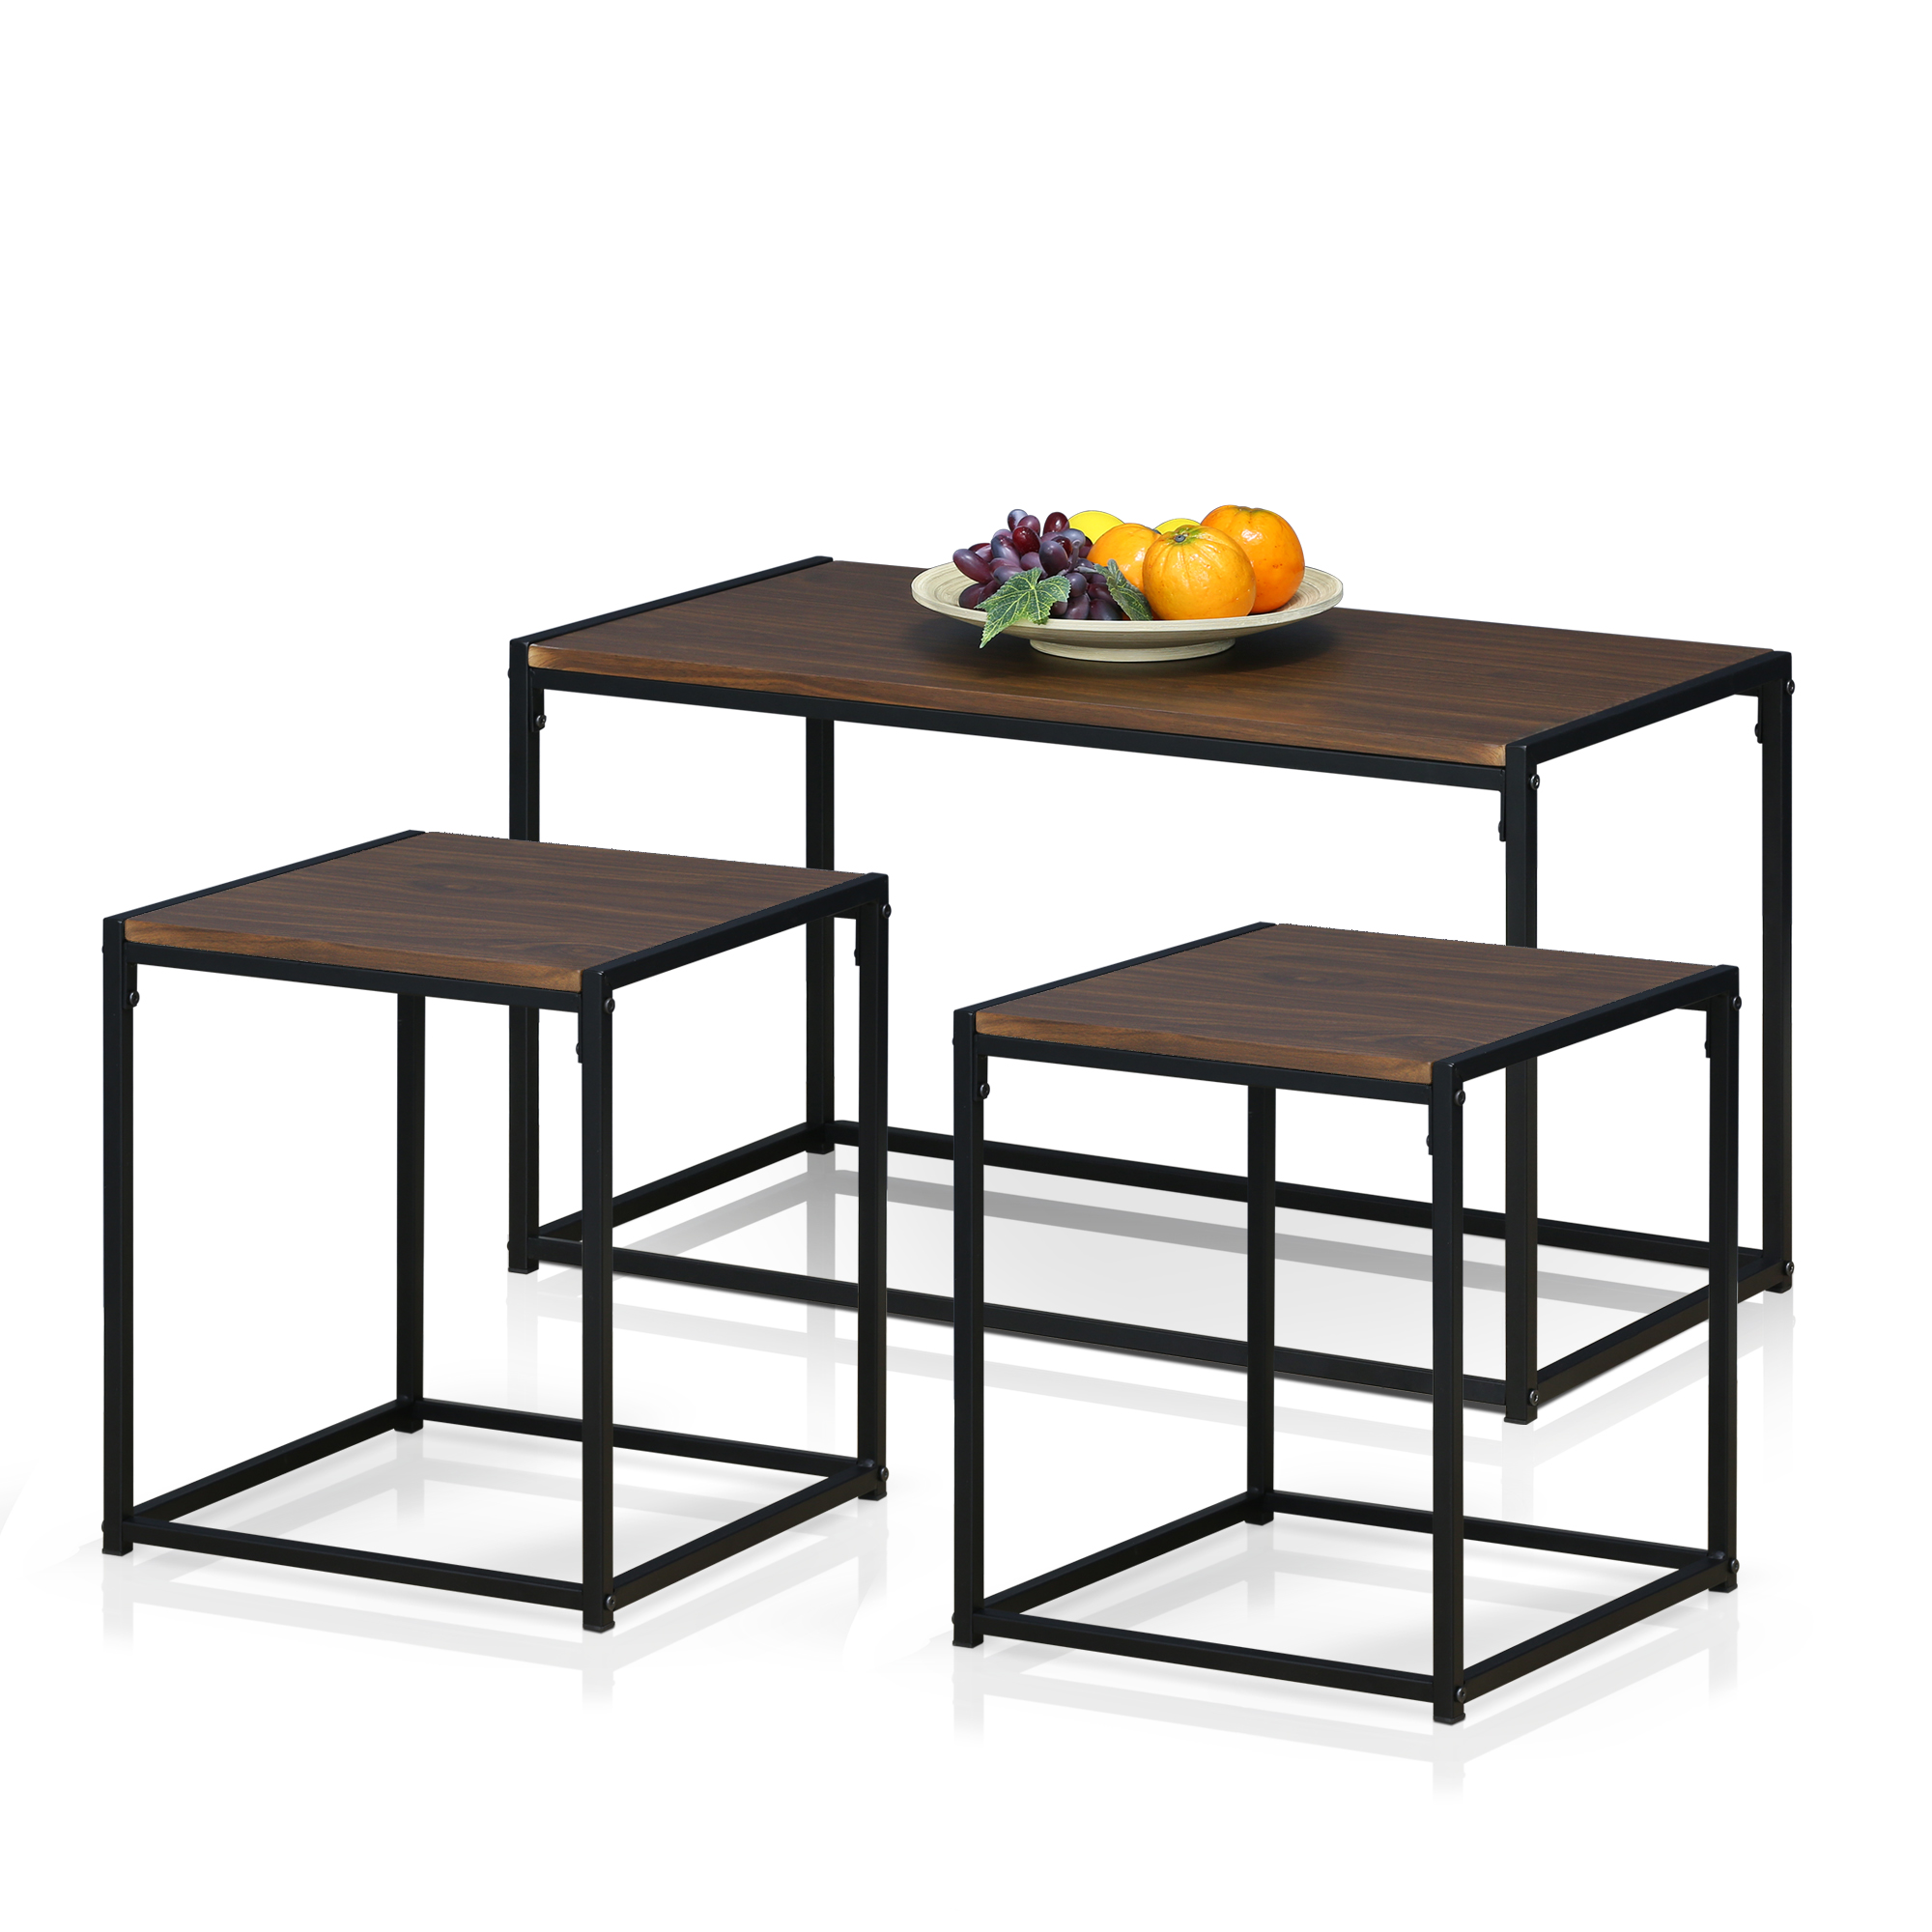 Furinno Ernst Modern Living Room Set, Multiple Colors